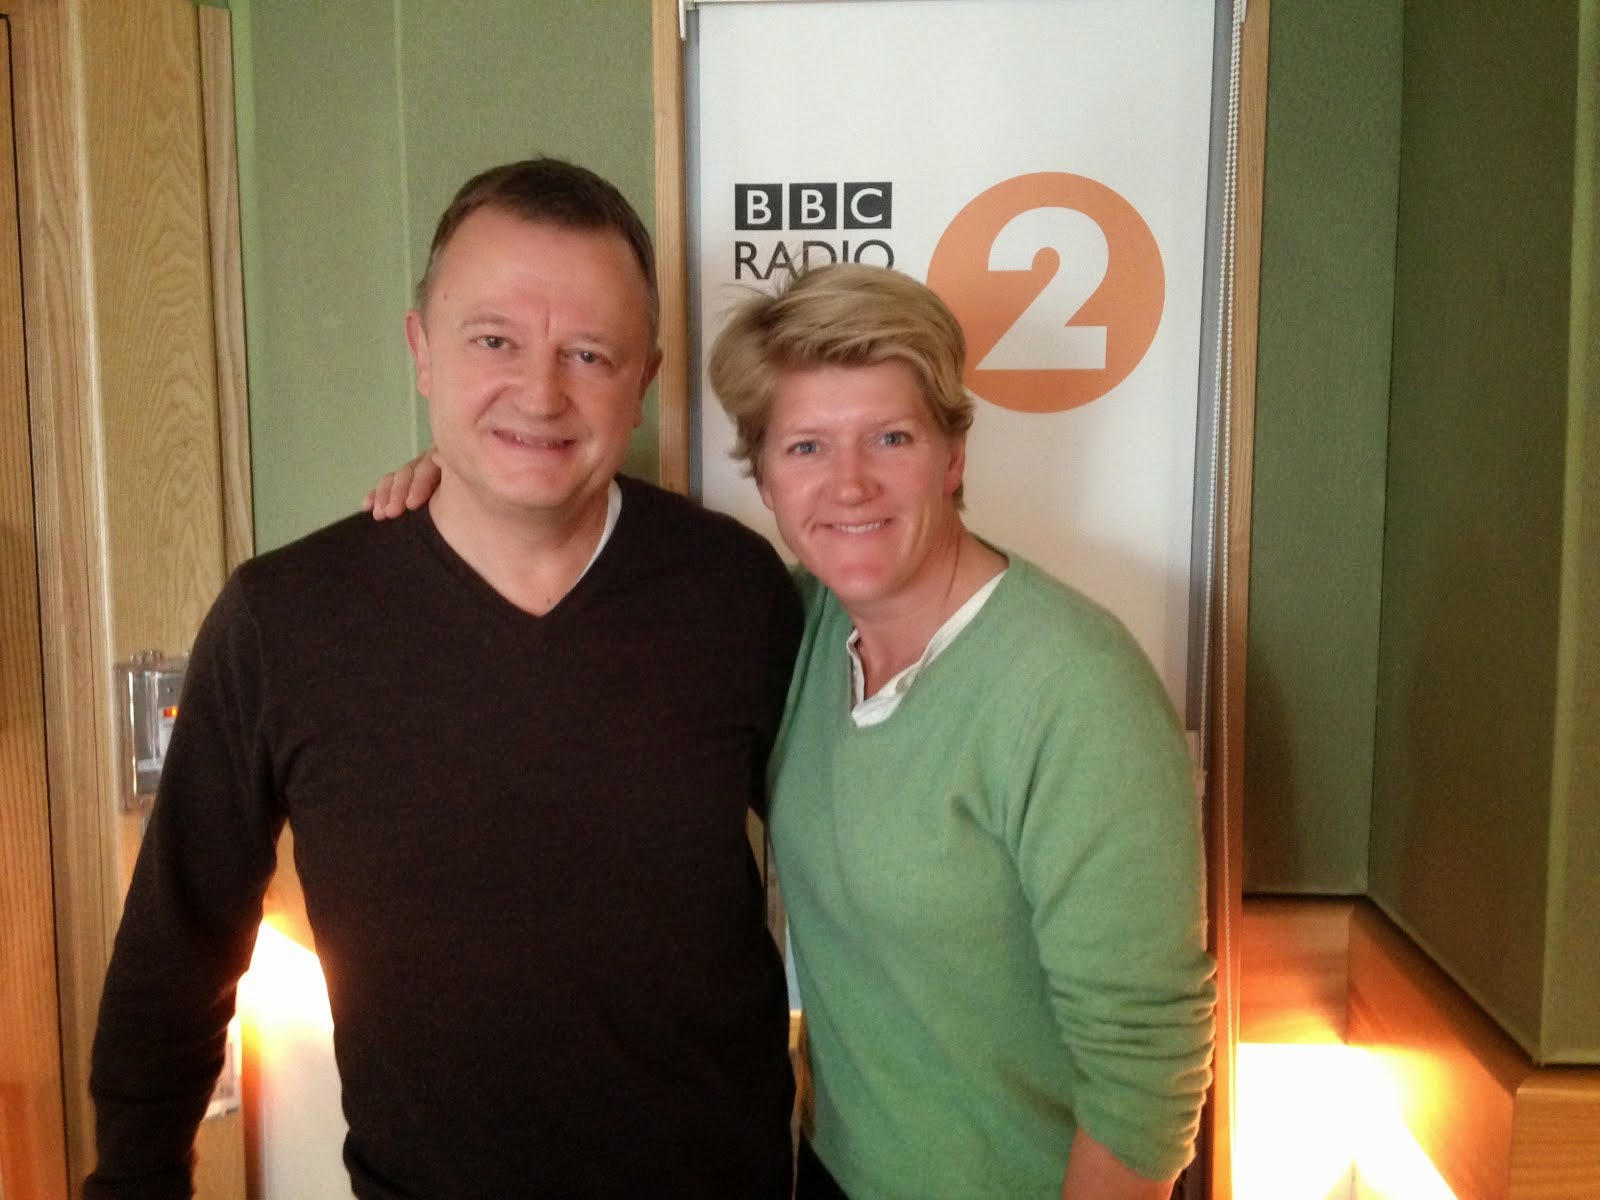 BBC Radio 2 with Clare Balding - March 2014